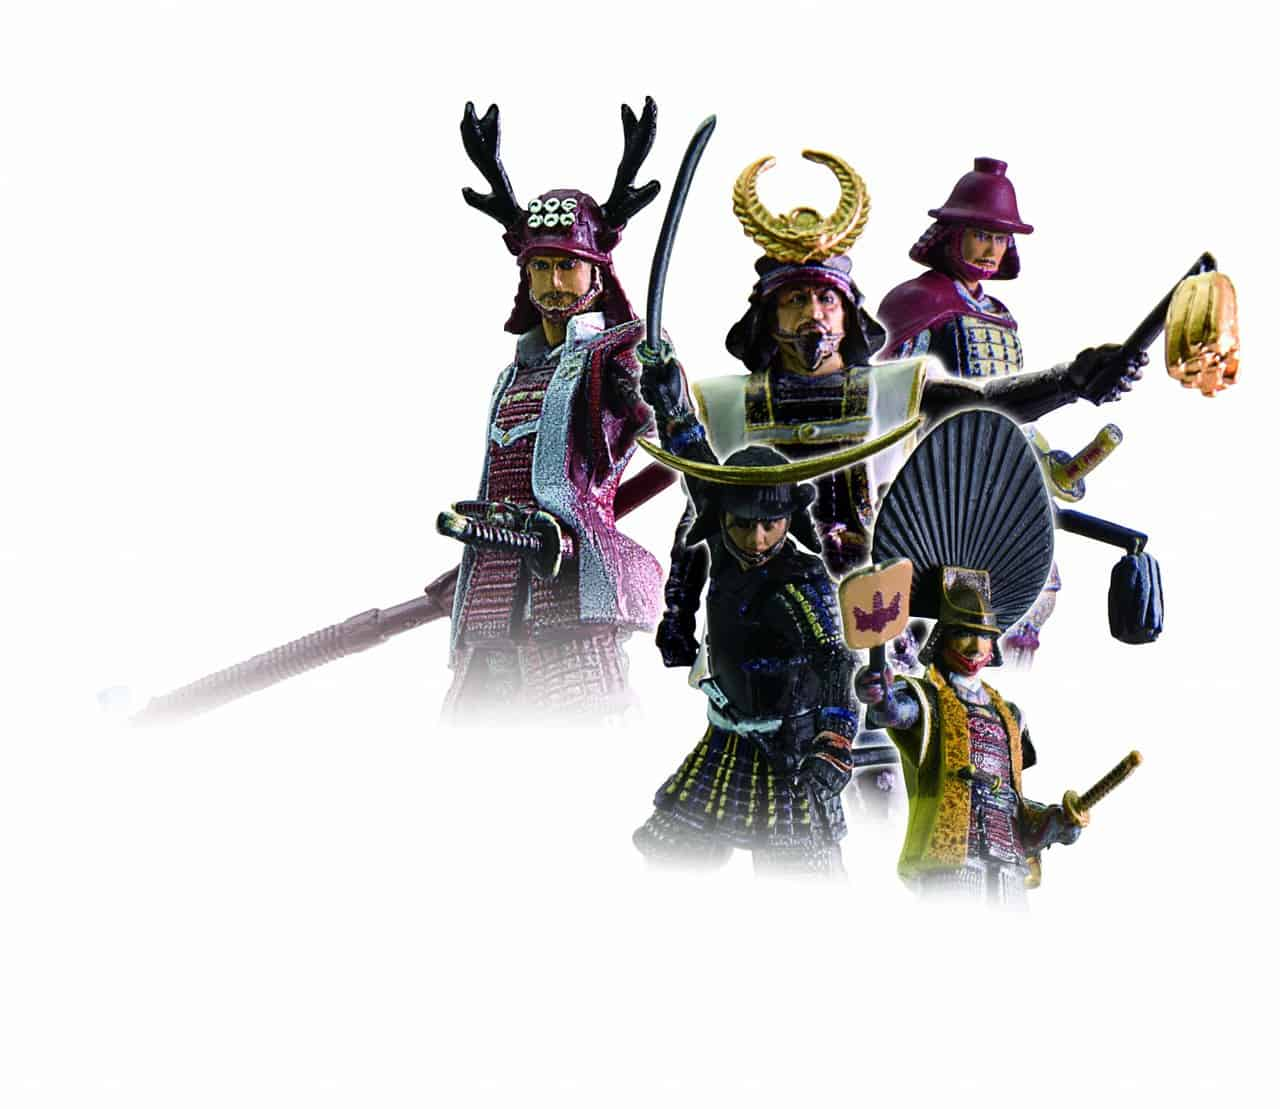 Samurai Figure by Bandai! – Check Samurai Figure Collection